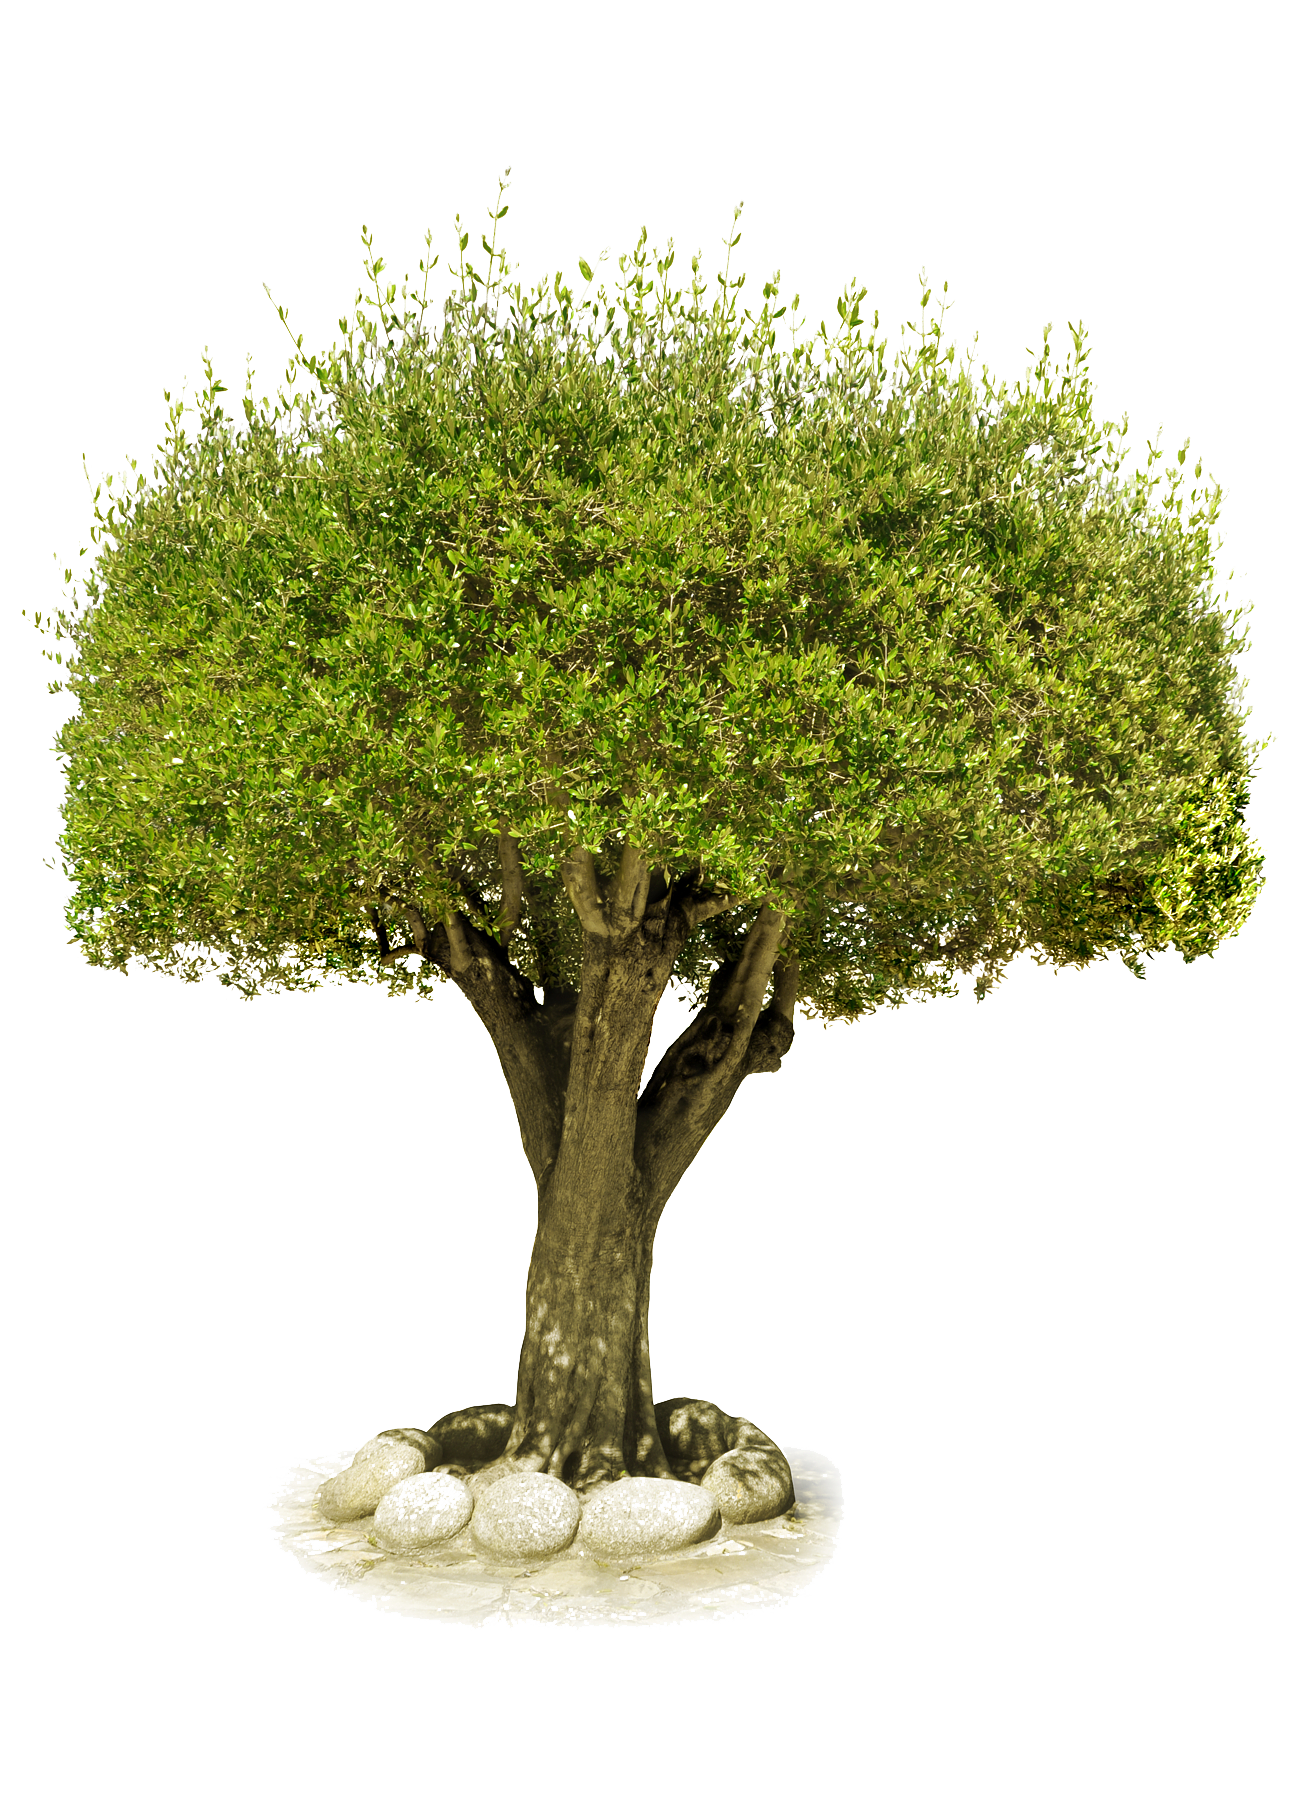 tree png image, free download, picture - PNG Free Download